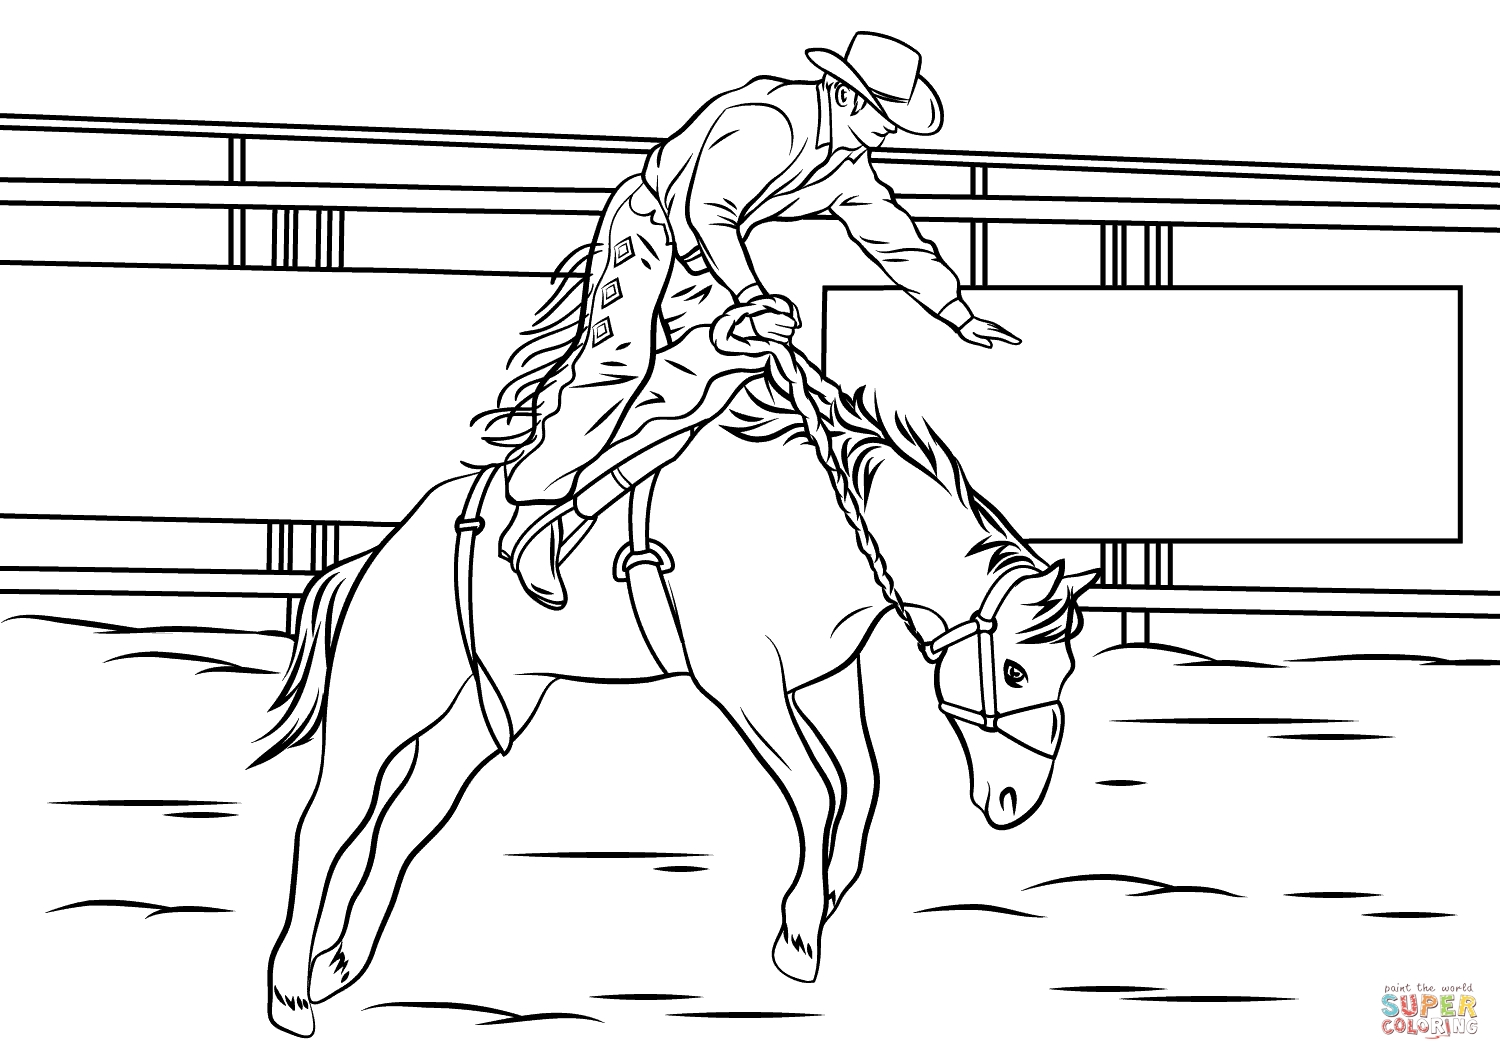 bull riding coloring pages miniature bucking bull coloring page bull pages coloring riding